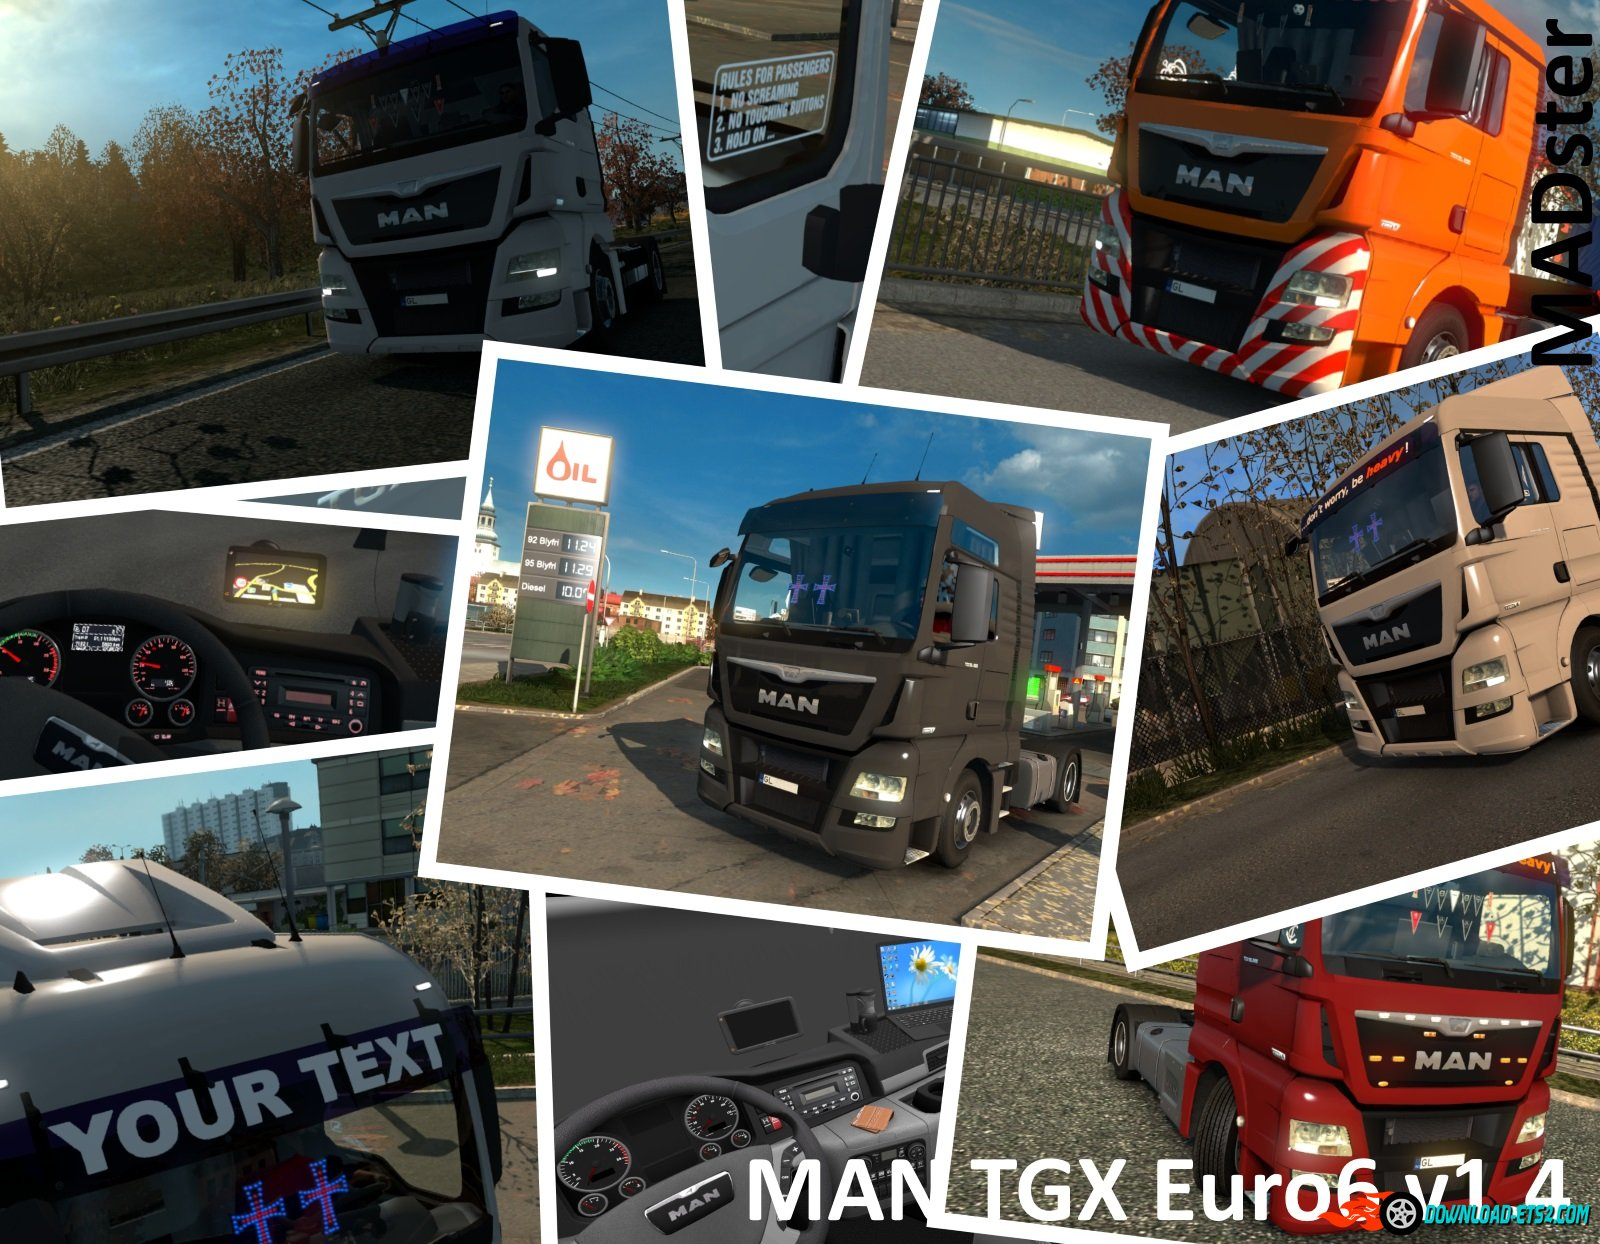 MAN TGX Euro6 v1.4 by MADster